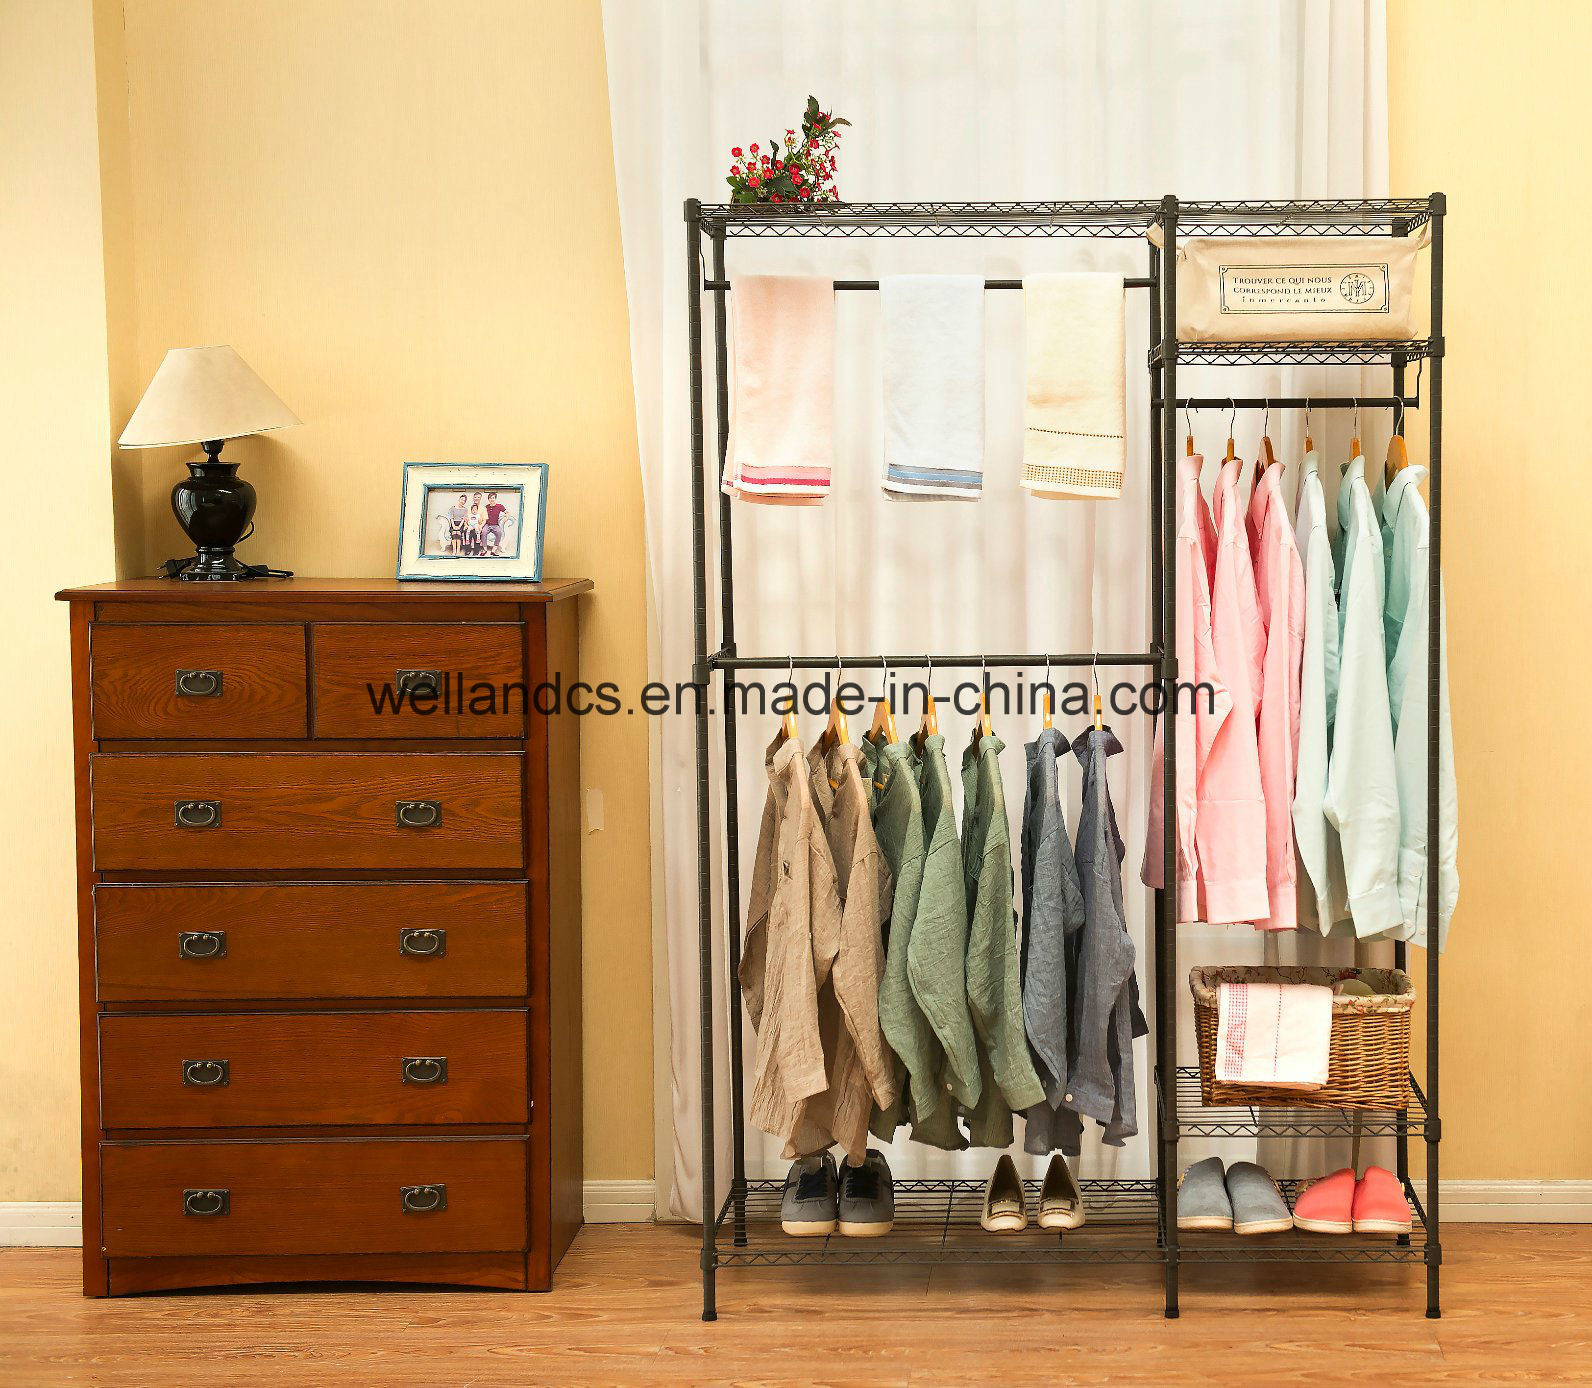 product portable fabric choice products shelf storage home rakuten closet system organizer best bestchoiceproducts shop wardrobe beige